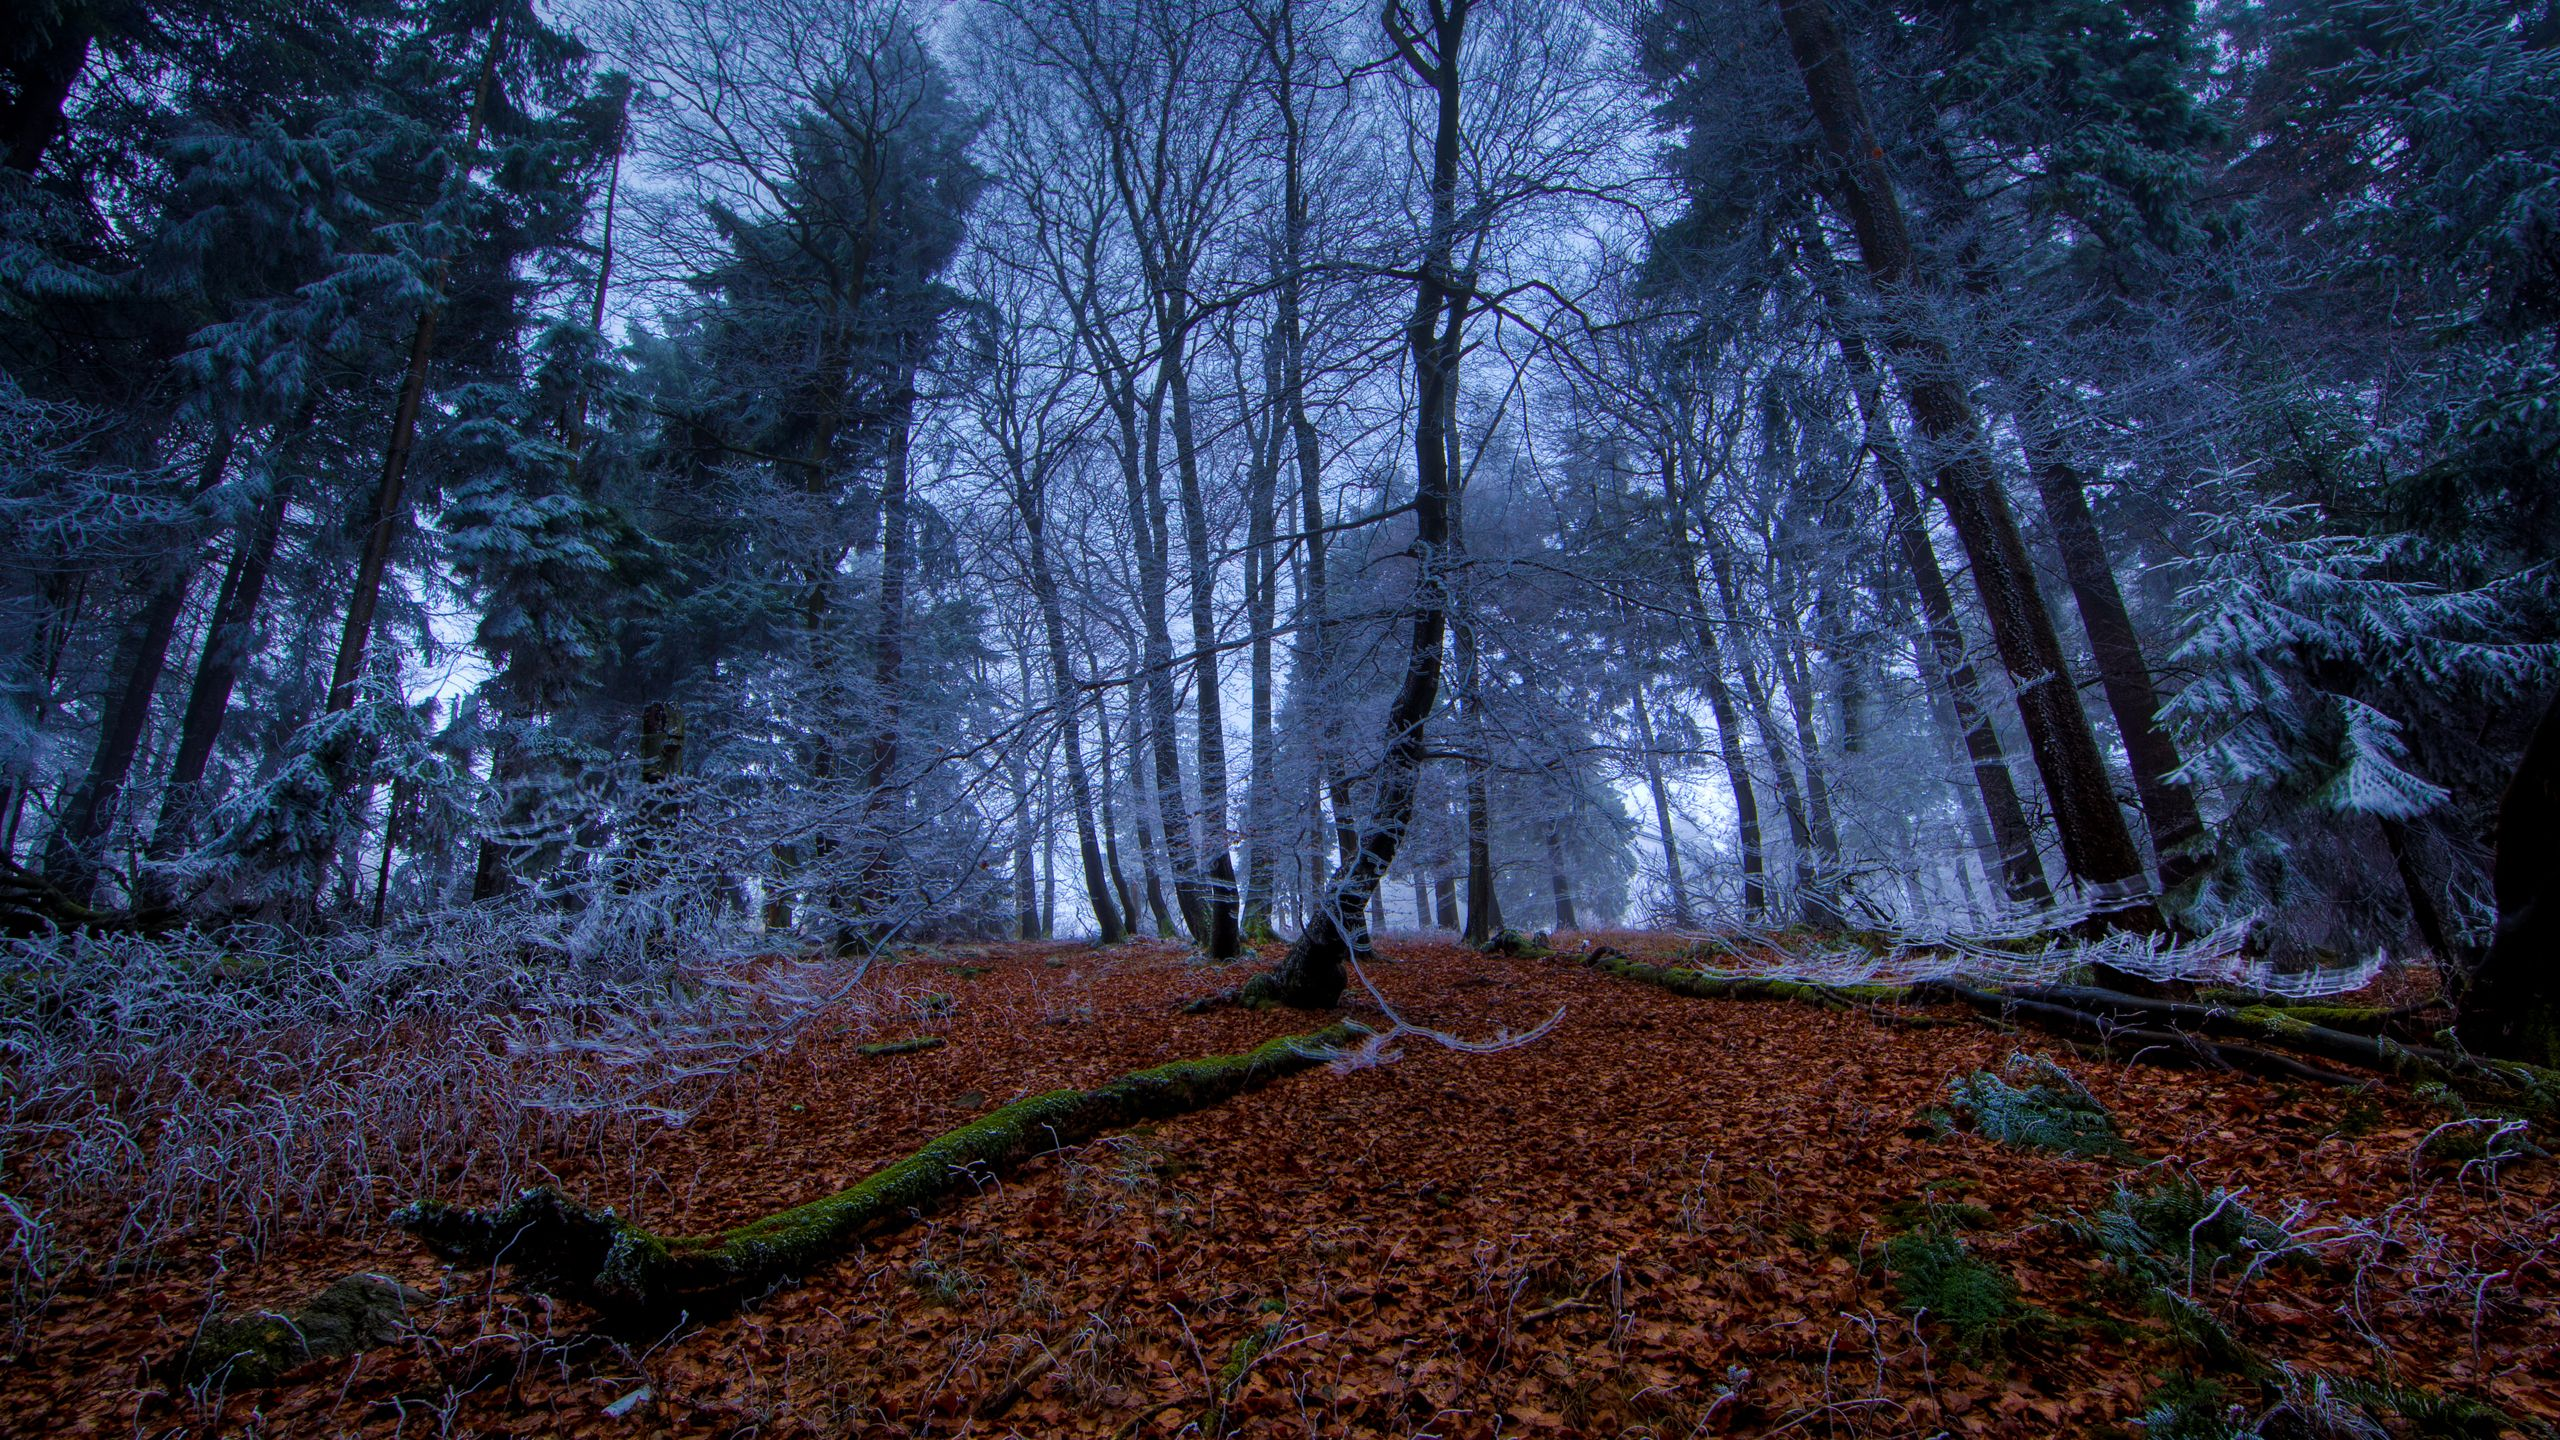 Forest Tree Night 2560x1440 Hd Wallpaper And Free Stock Photo Forest Pictures Night Forest Nature Wallpaper